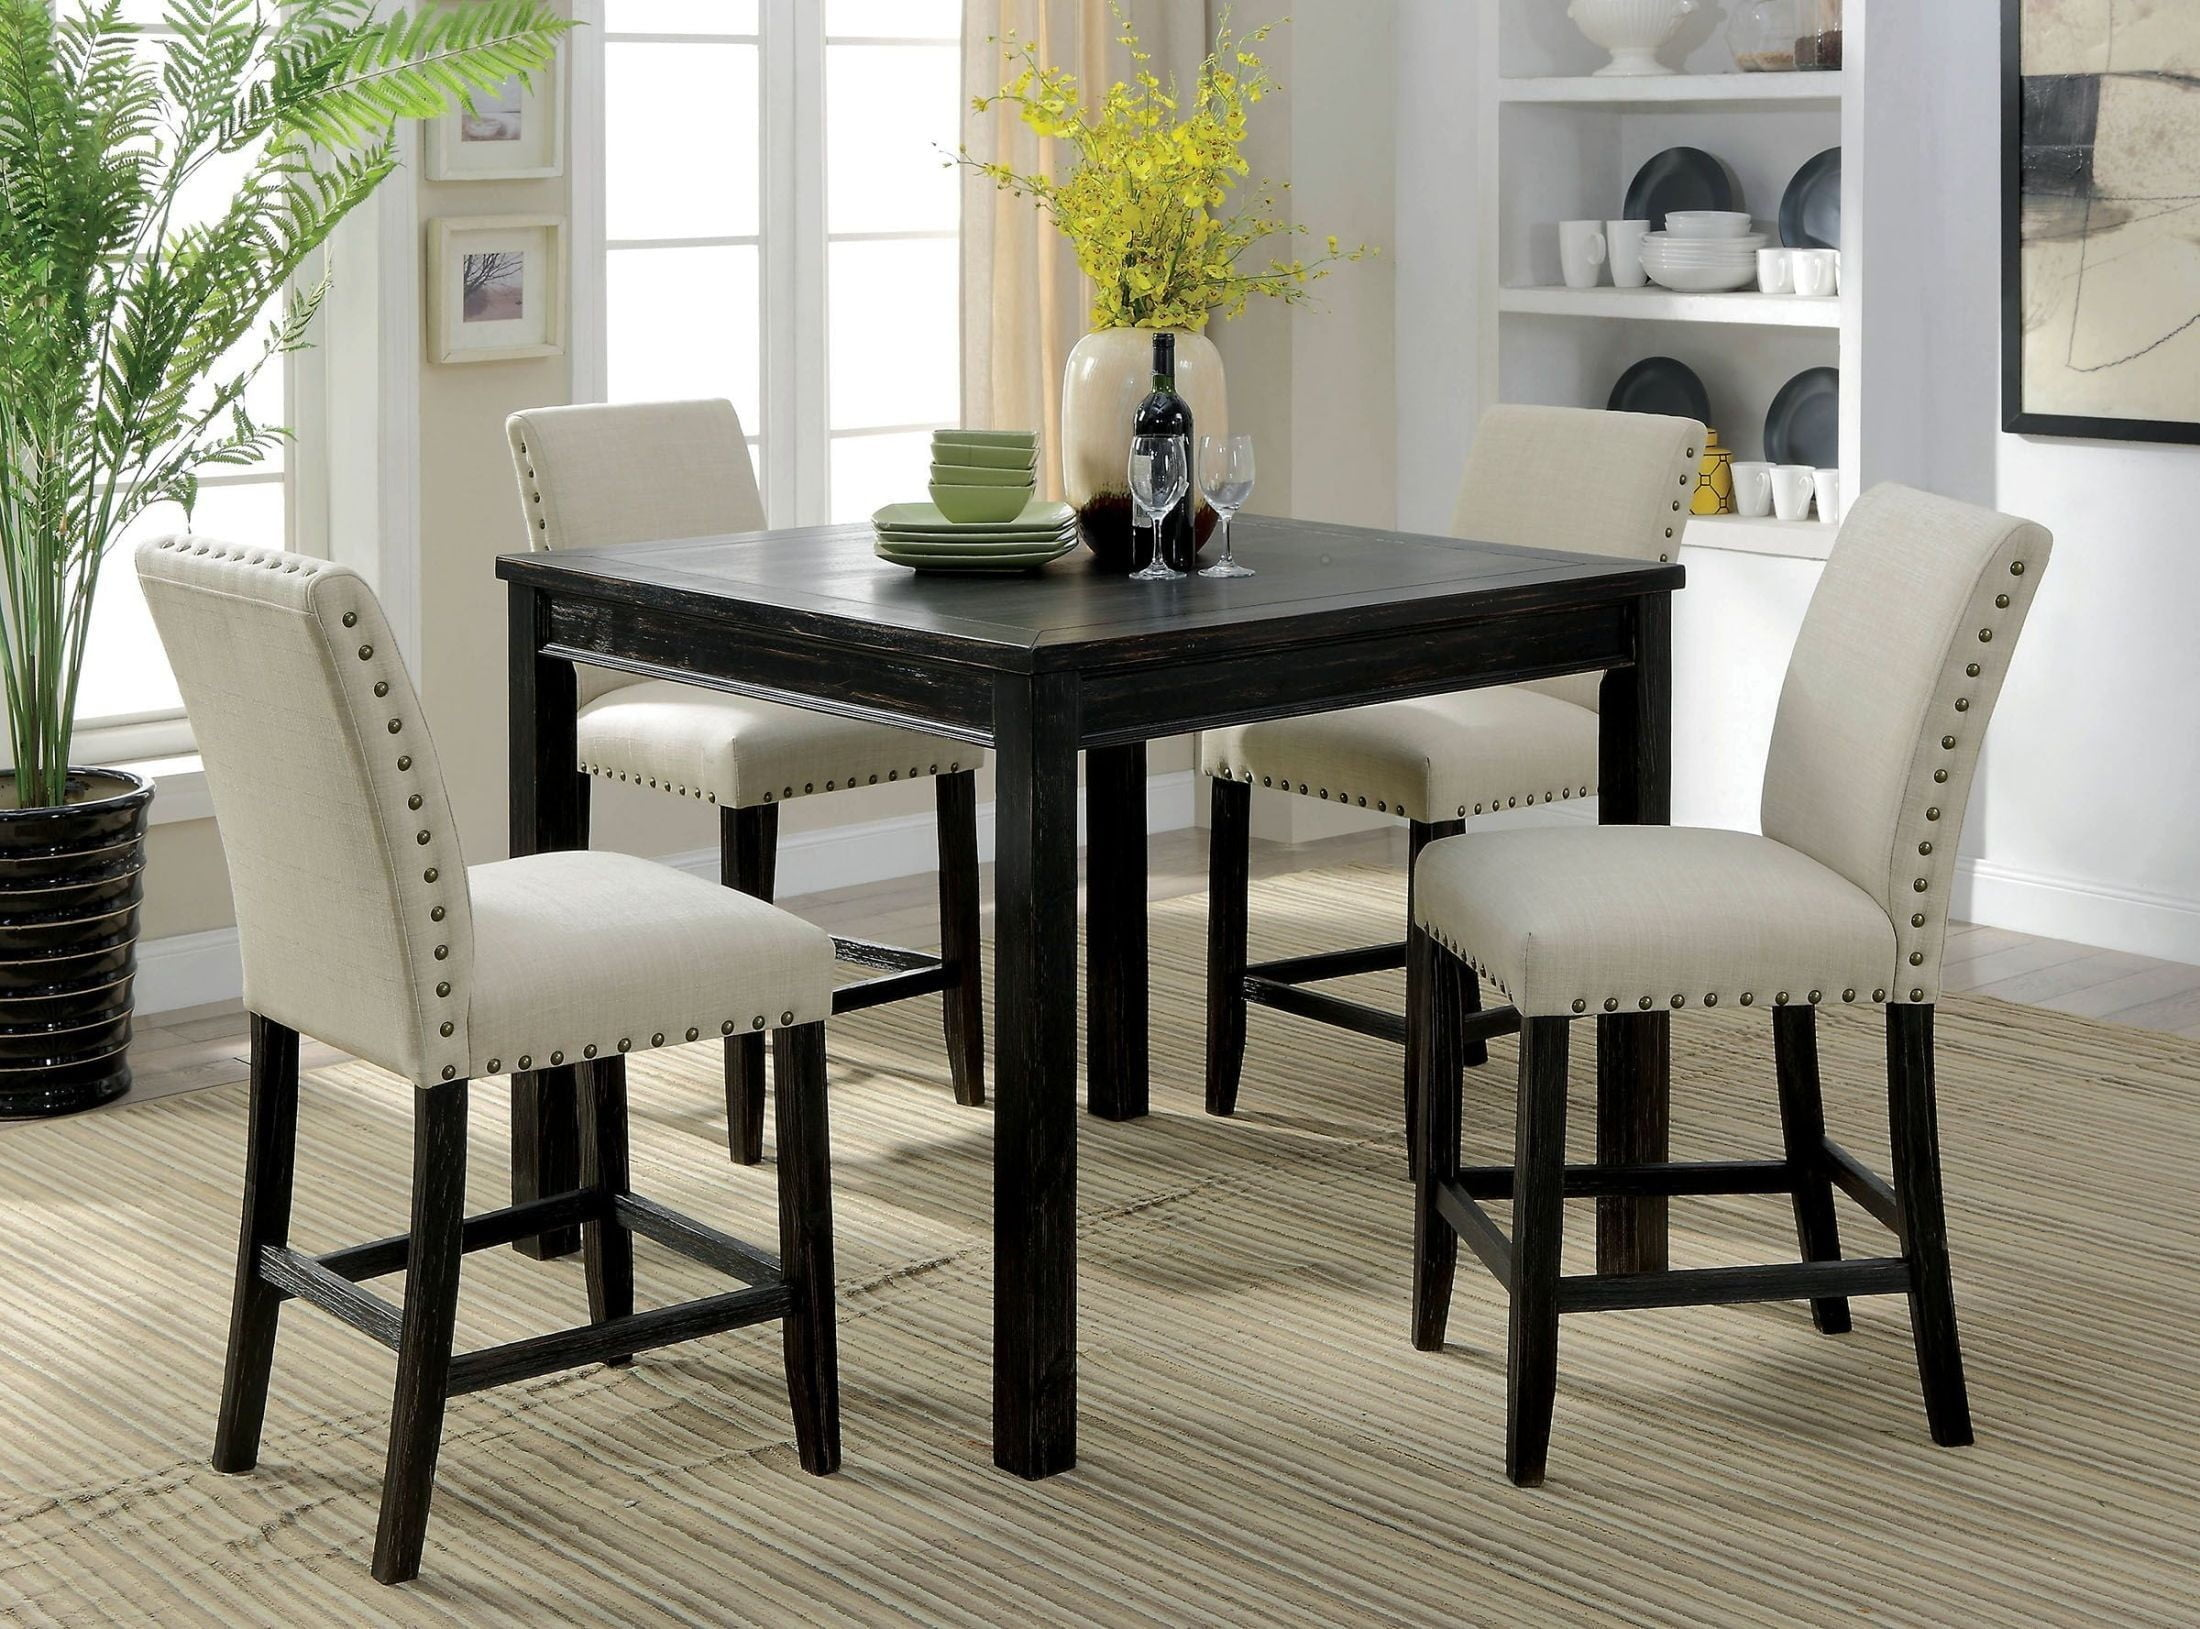 kristie antique black counter height dining table set from furniture of america coleman furniture. Black Bedroom Furniture Sets. Home Design Ideas